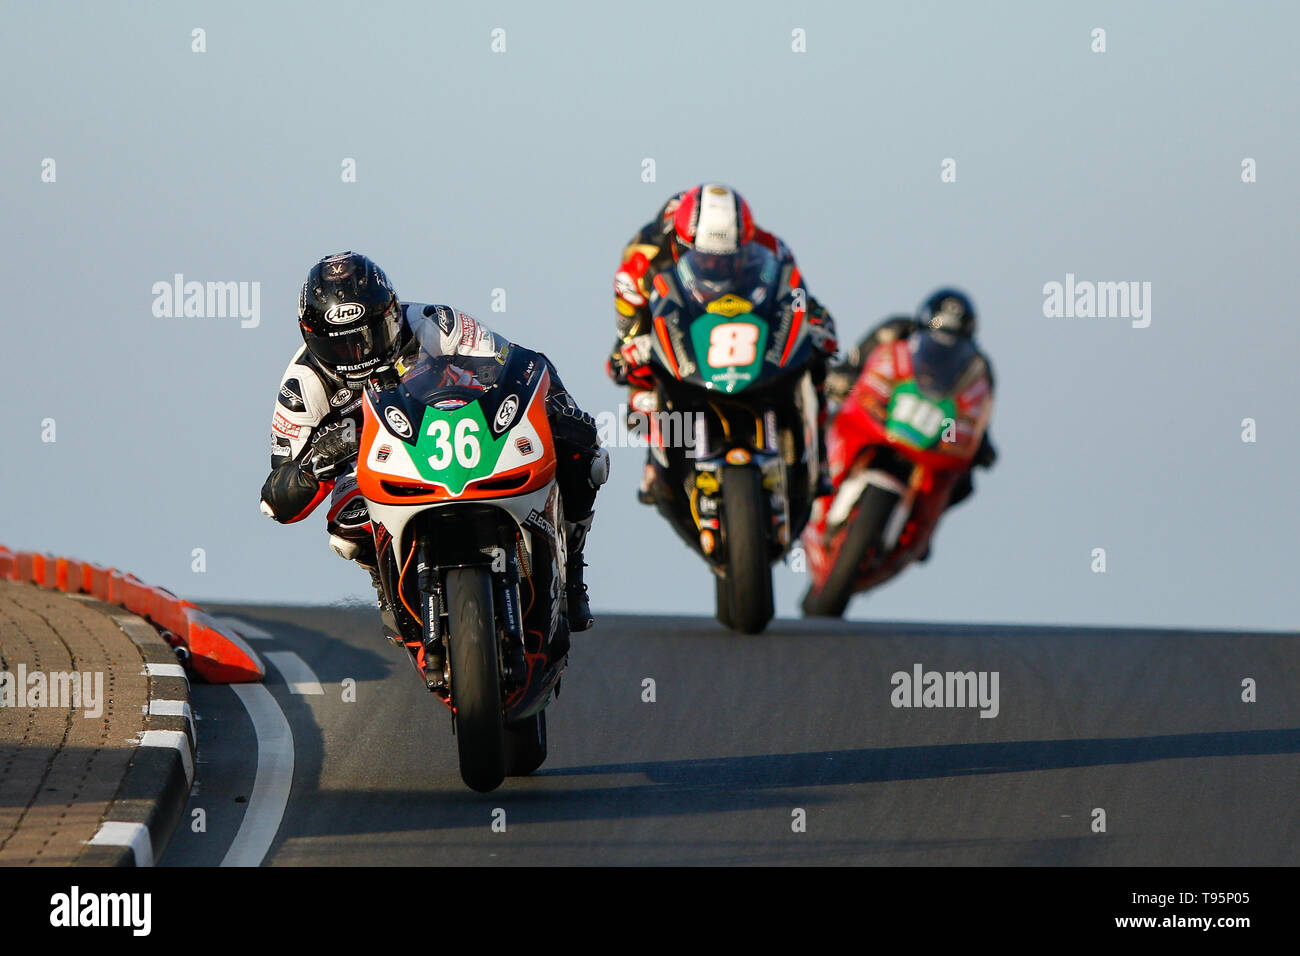 Portrush, Northern Ireland. 16th May, 2019. International North West 200 Motorcycle road racing, Thursday practice and evening racing; Jamie Coward (KTS Racing Kawasaki) finished in 2nd place in the SuperTwin race, ahead of Michael Rutter (Bathams Racing Kawasaki) Credit: Action Plus Sports/Alamy Live News - Stock Image